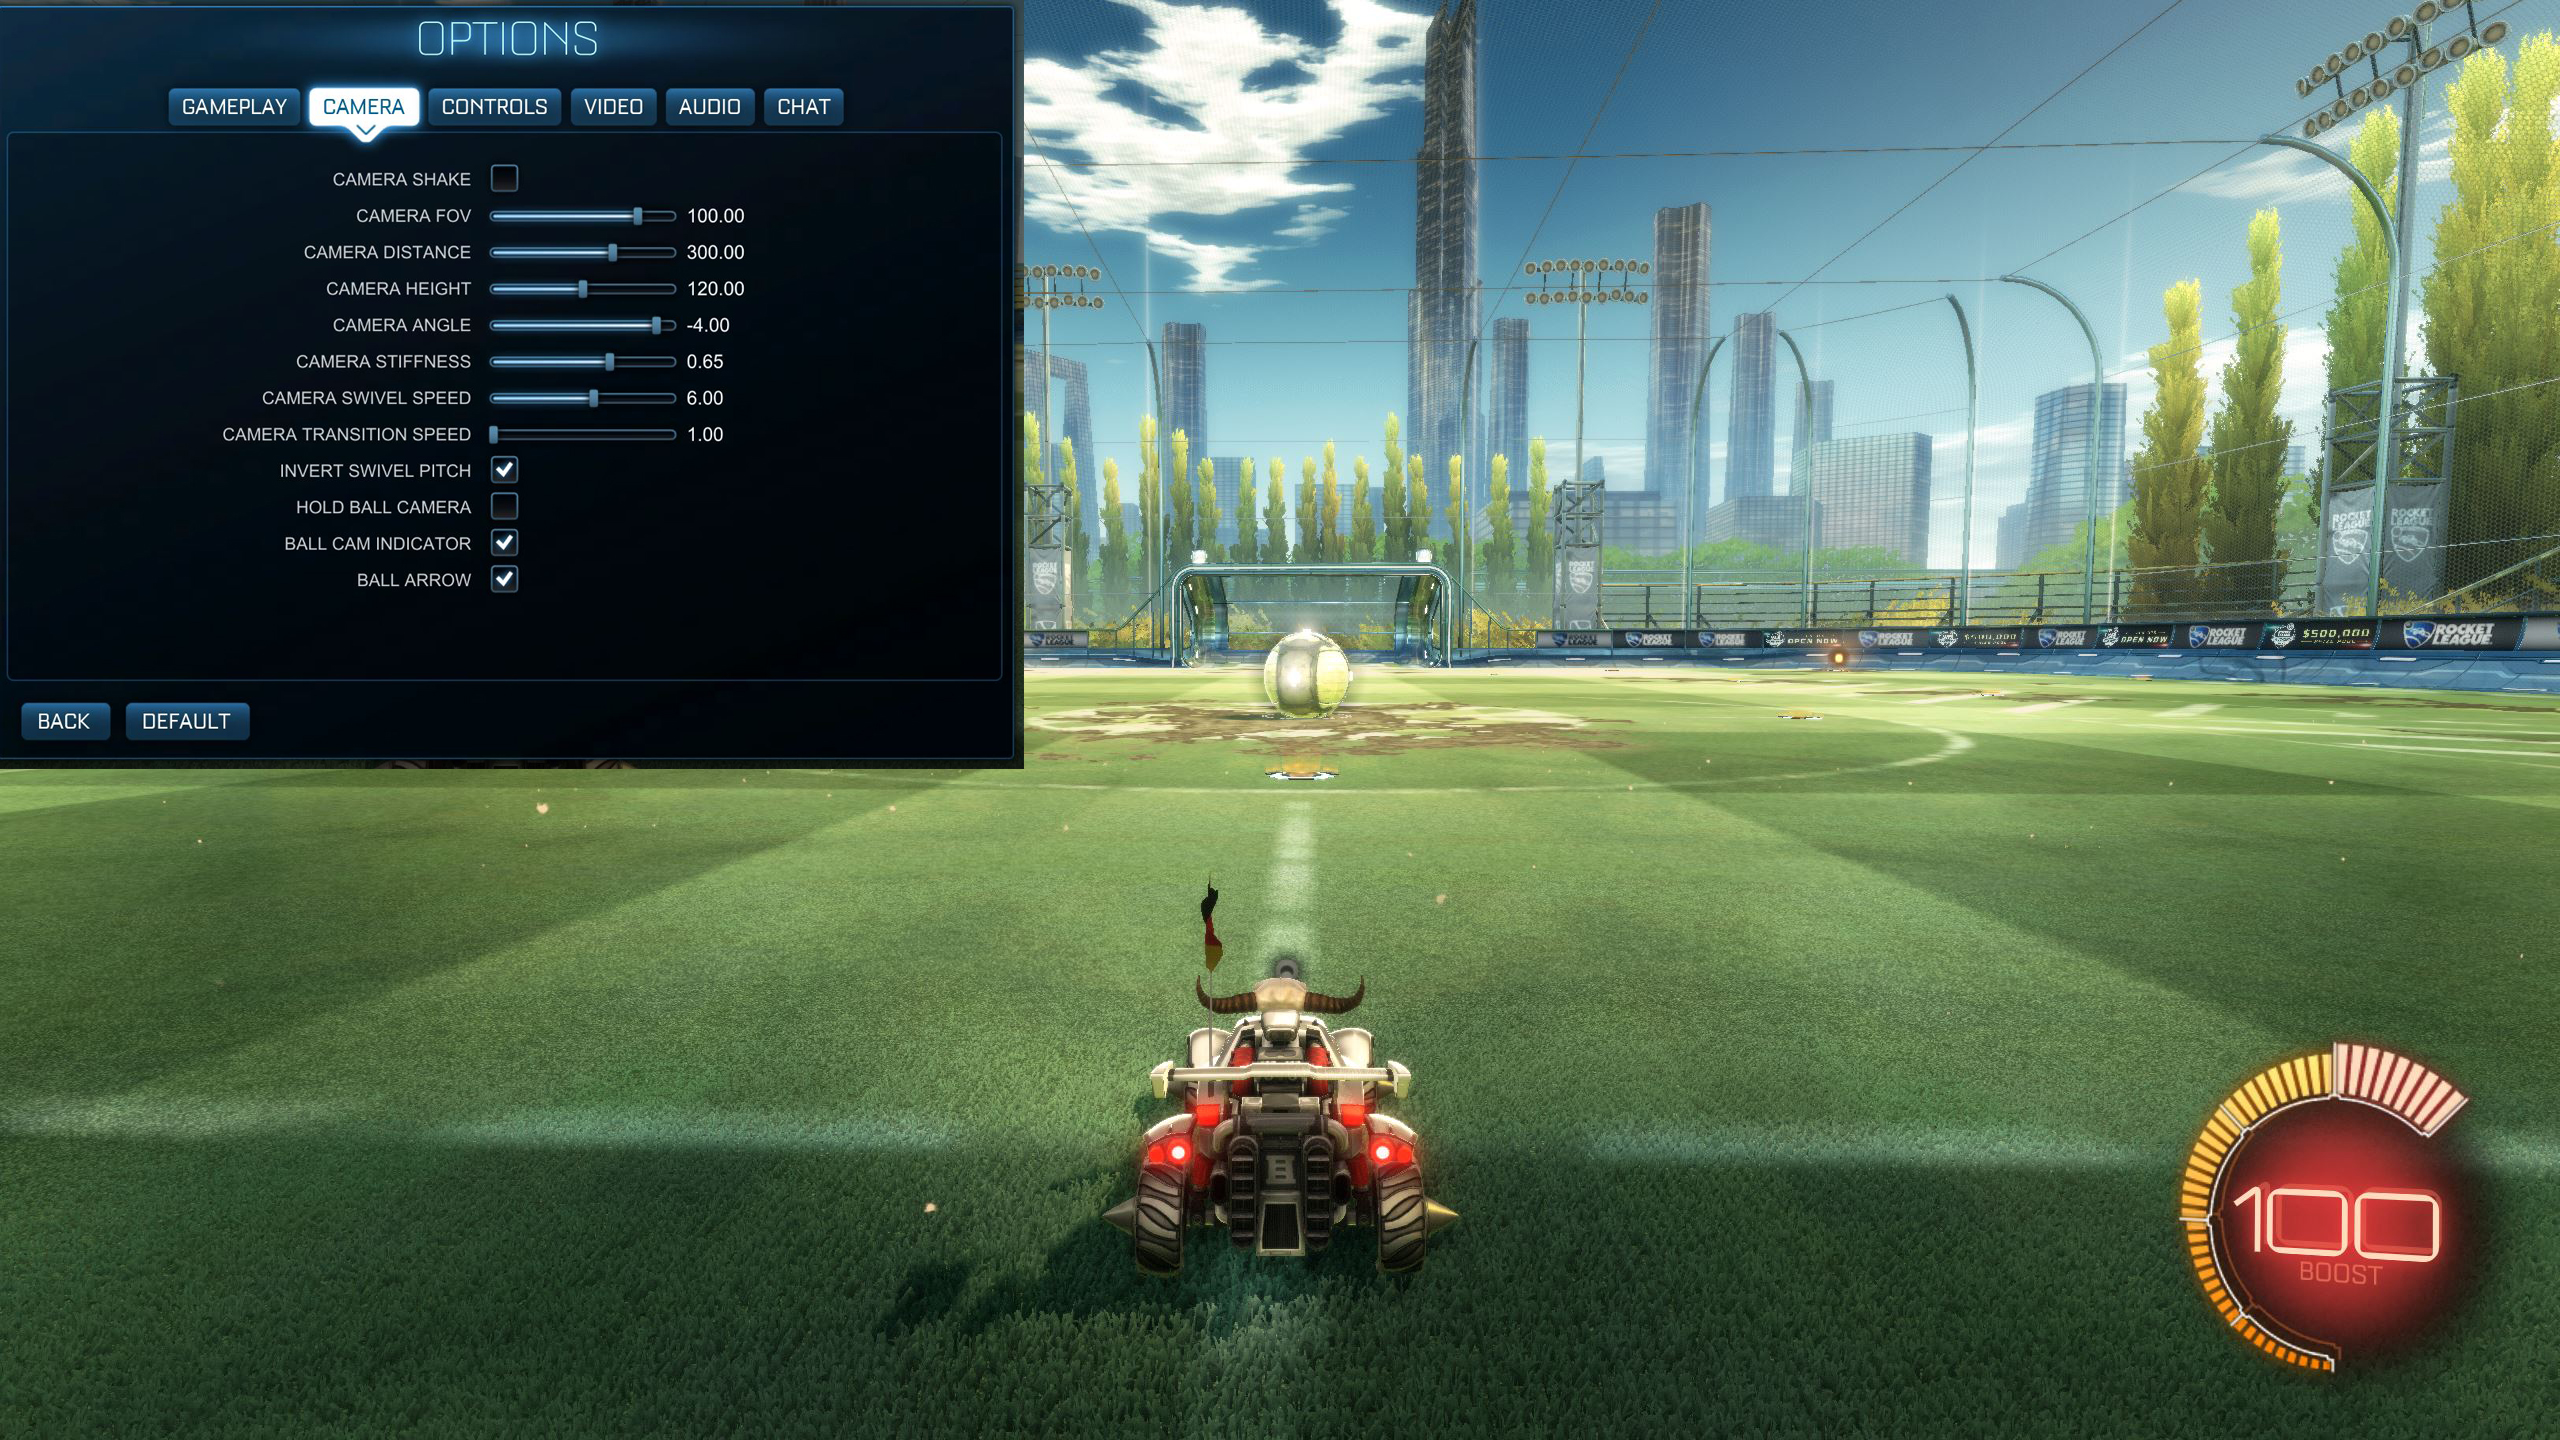 Rocket League camera settings Jacob